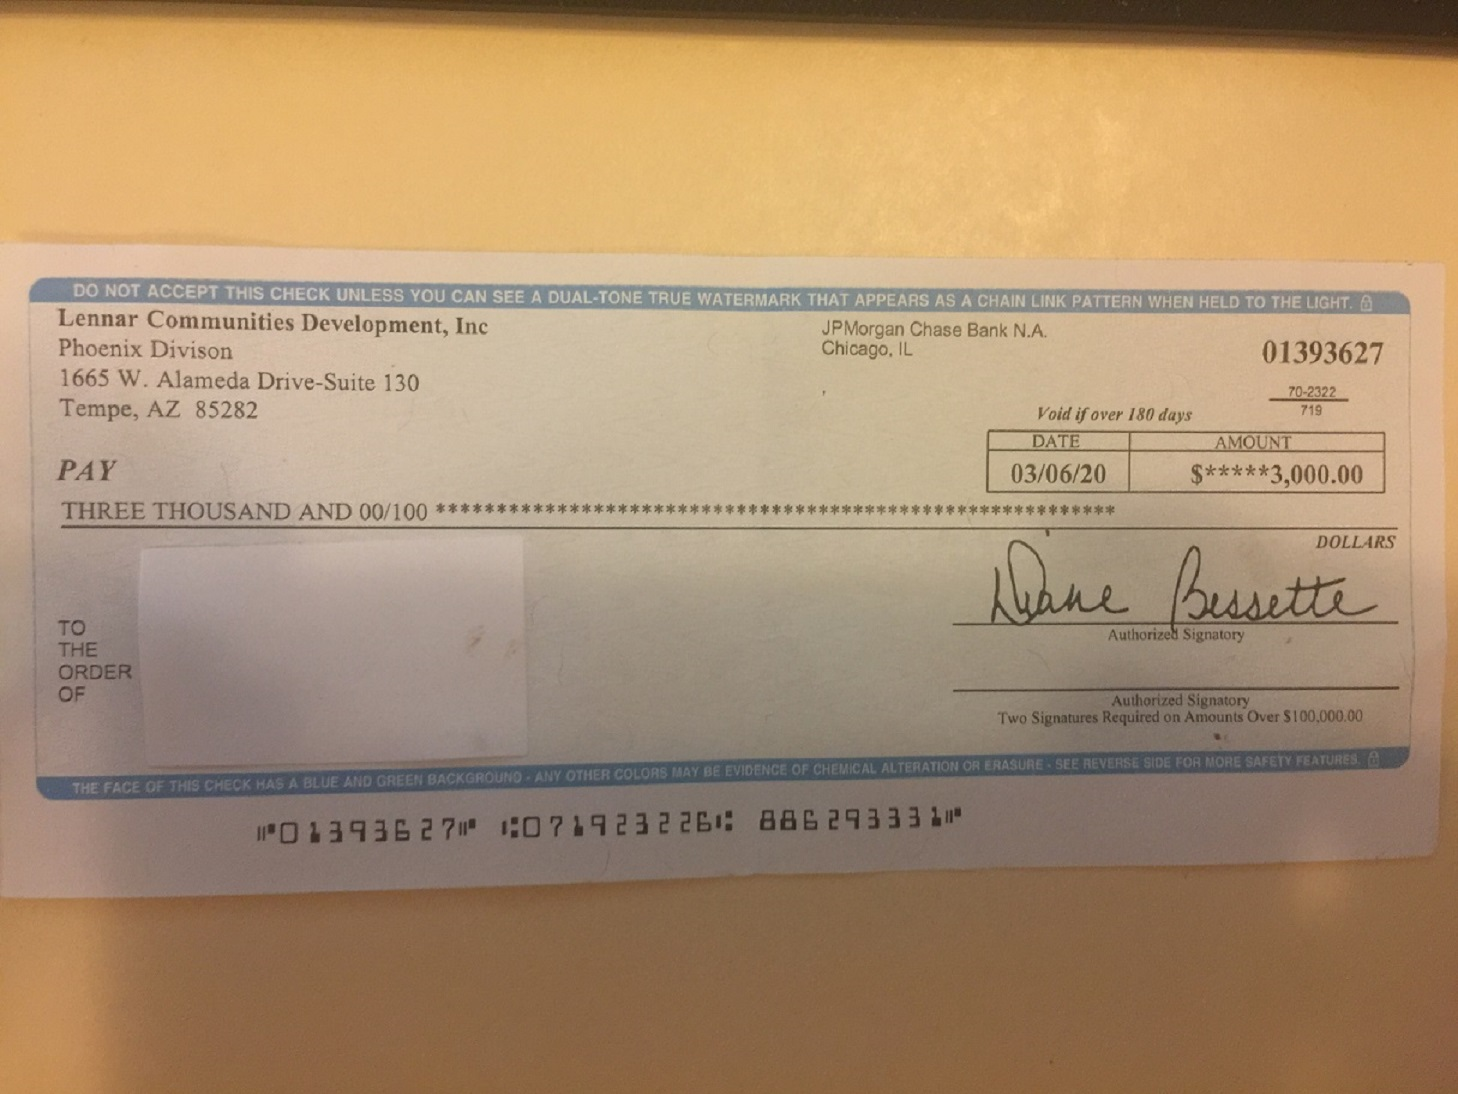 Chase Bank Bad check from 'Diane Bessette' after agreement between 'Steven M Moore','Kathleen J Spencer' referred to 'Thomas Haldorsen